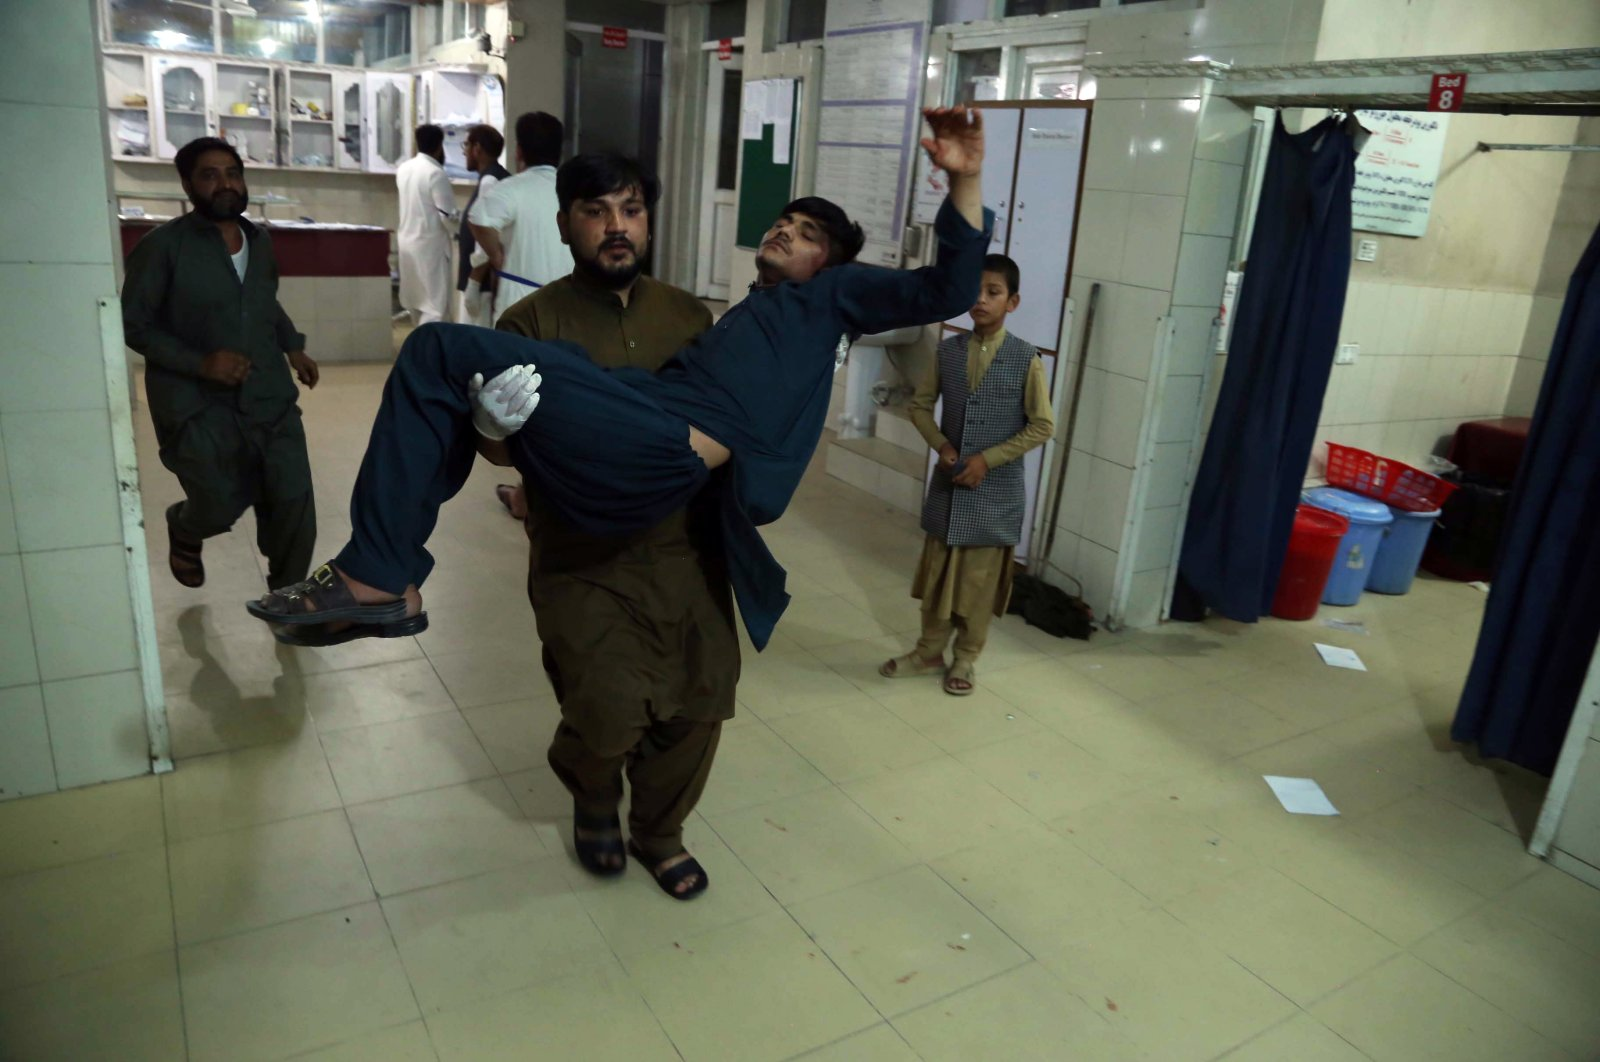 An Afghan man who was injured when militants attacked a central prison is transferred to a hospital in Jalalabad, Afghanistan, Aug. 2, 2020. (EPA Photo)